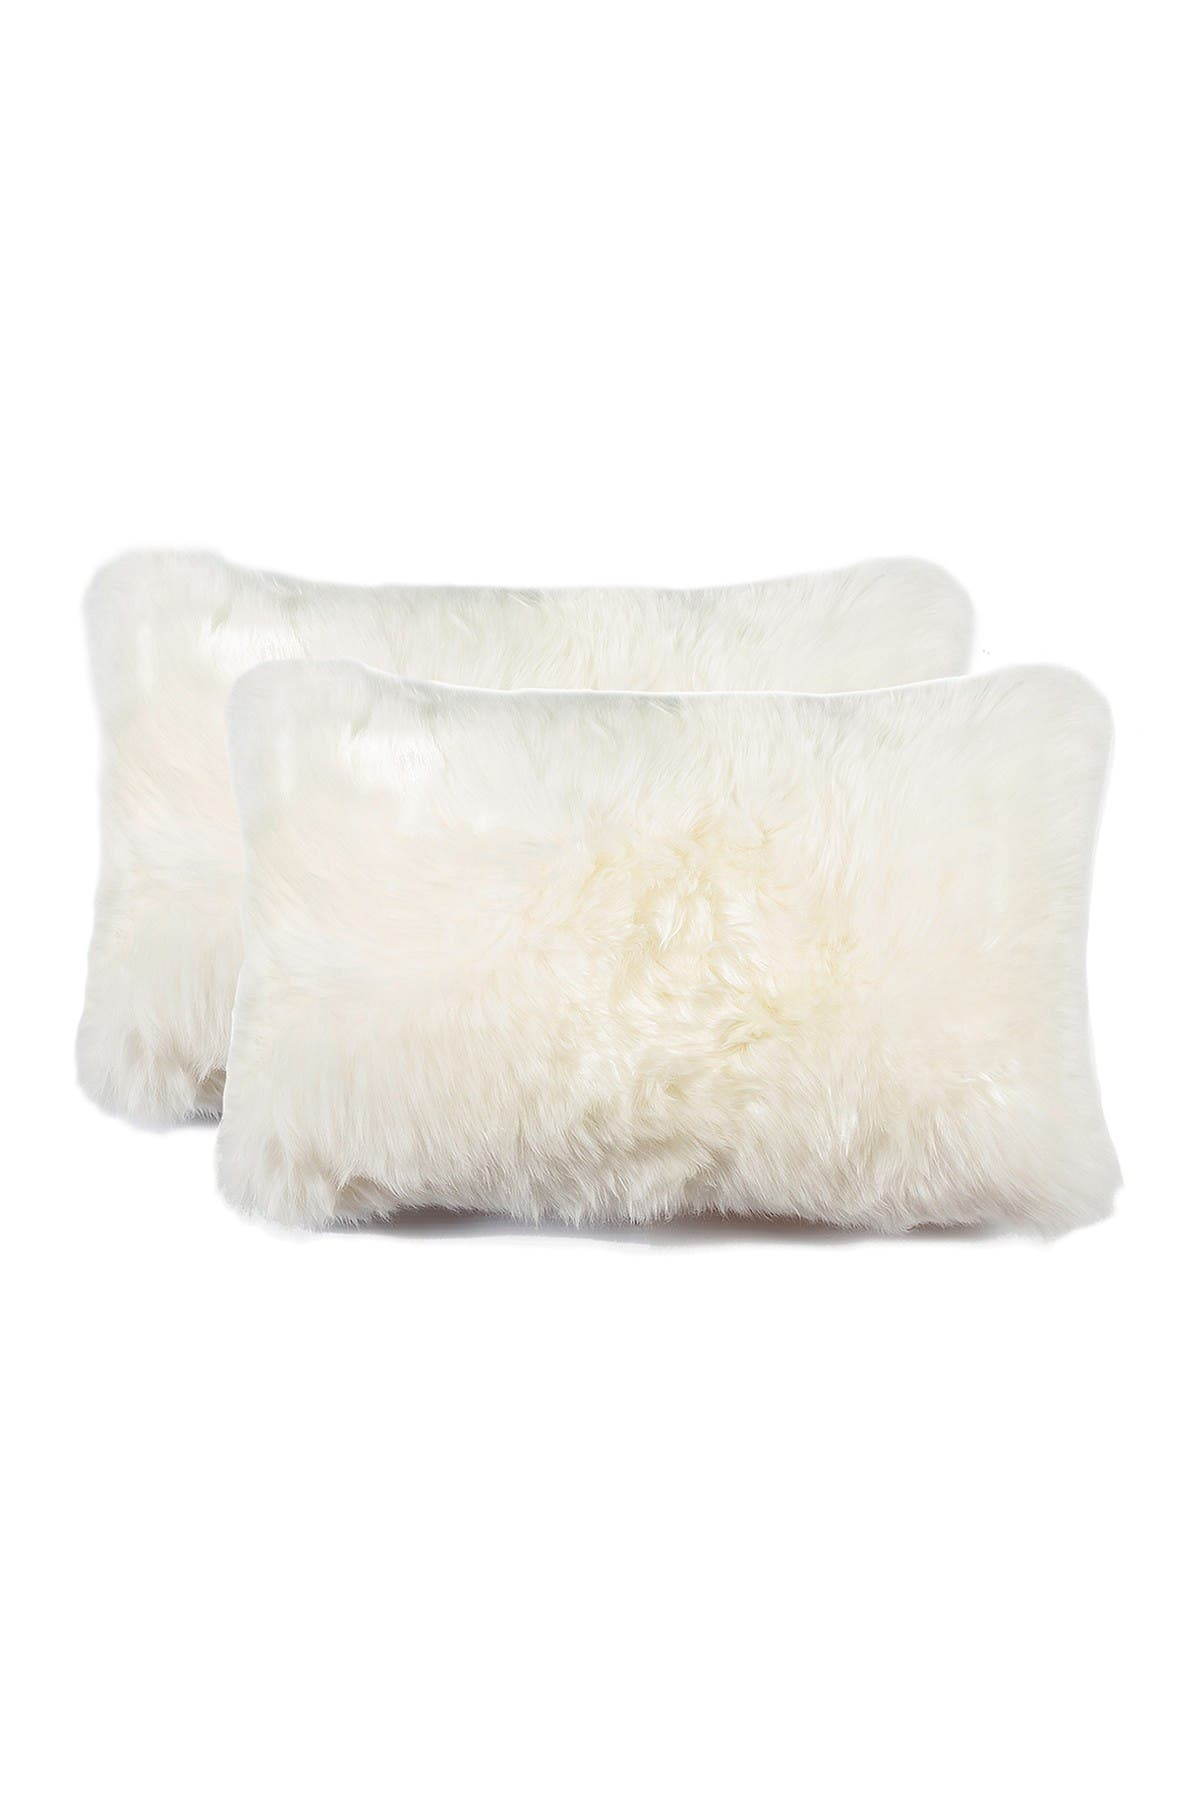 Image of Natural New Zealand 12x20 Genuine Sheepskin Pillow - Set of 2 - Natural